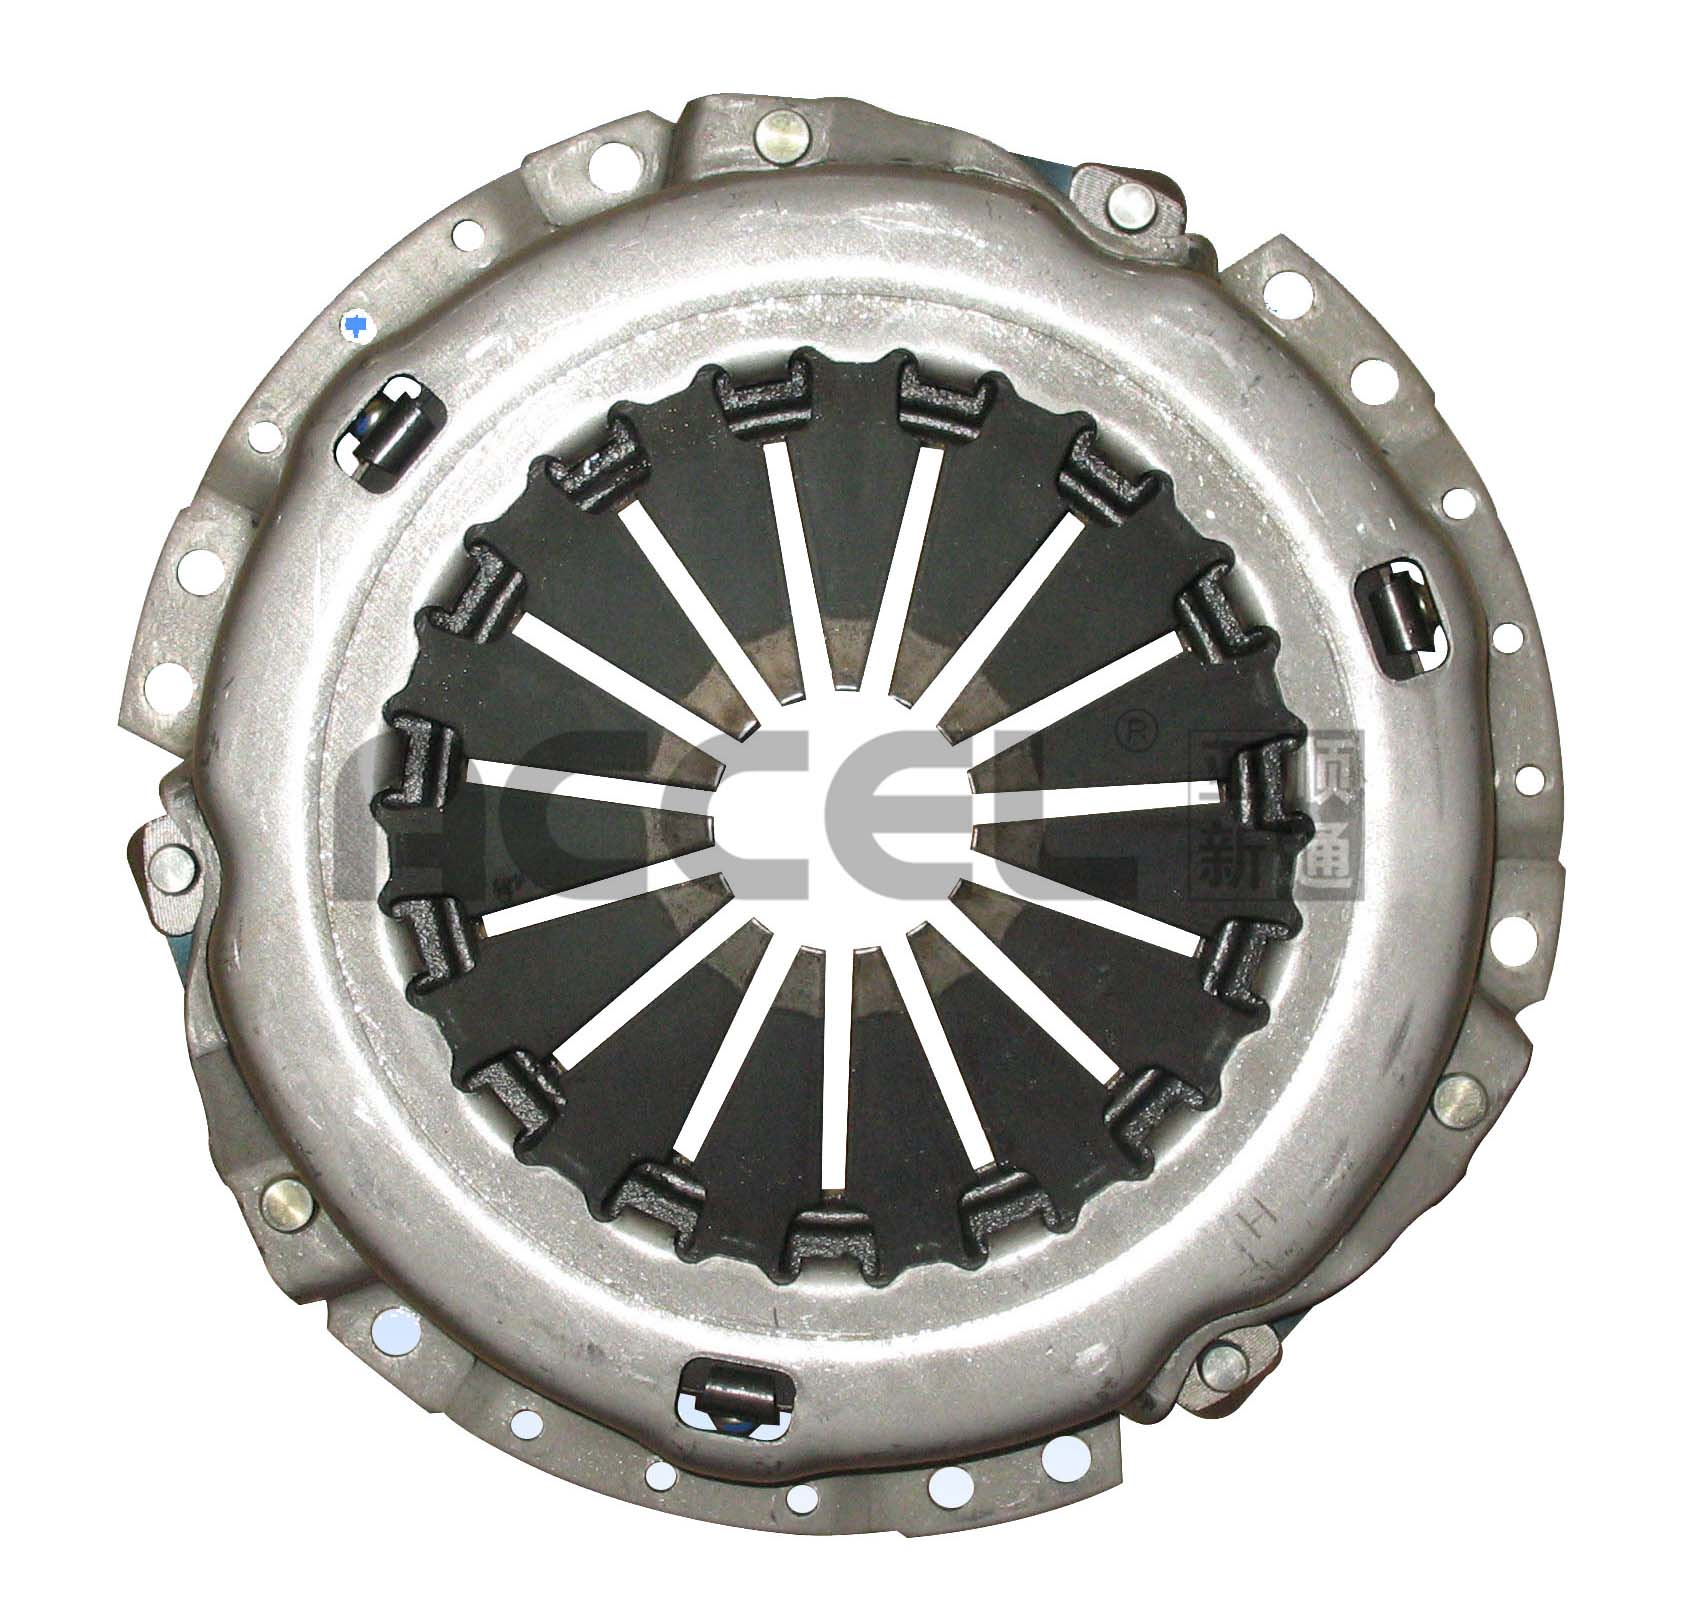 Clutch Cover/OE:31210-12152/215*137*250/CTY-008/TOYOTA/LY154/CT-088